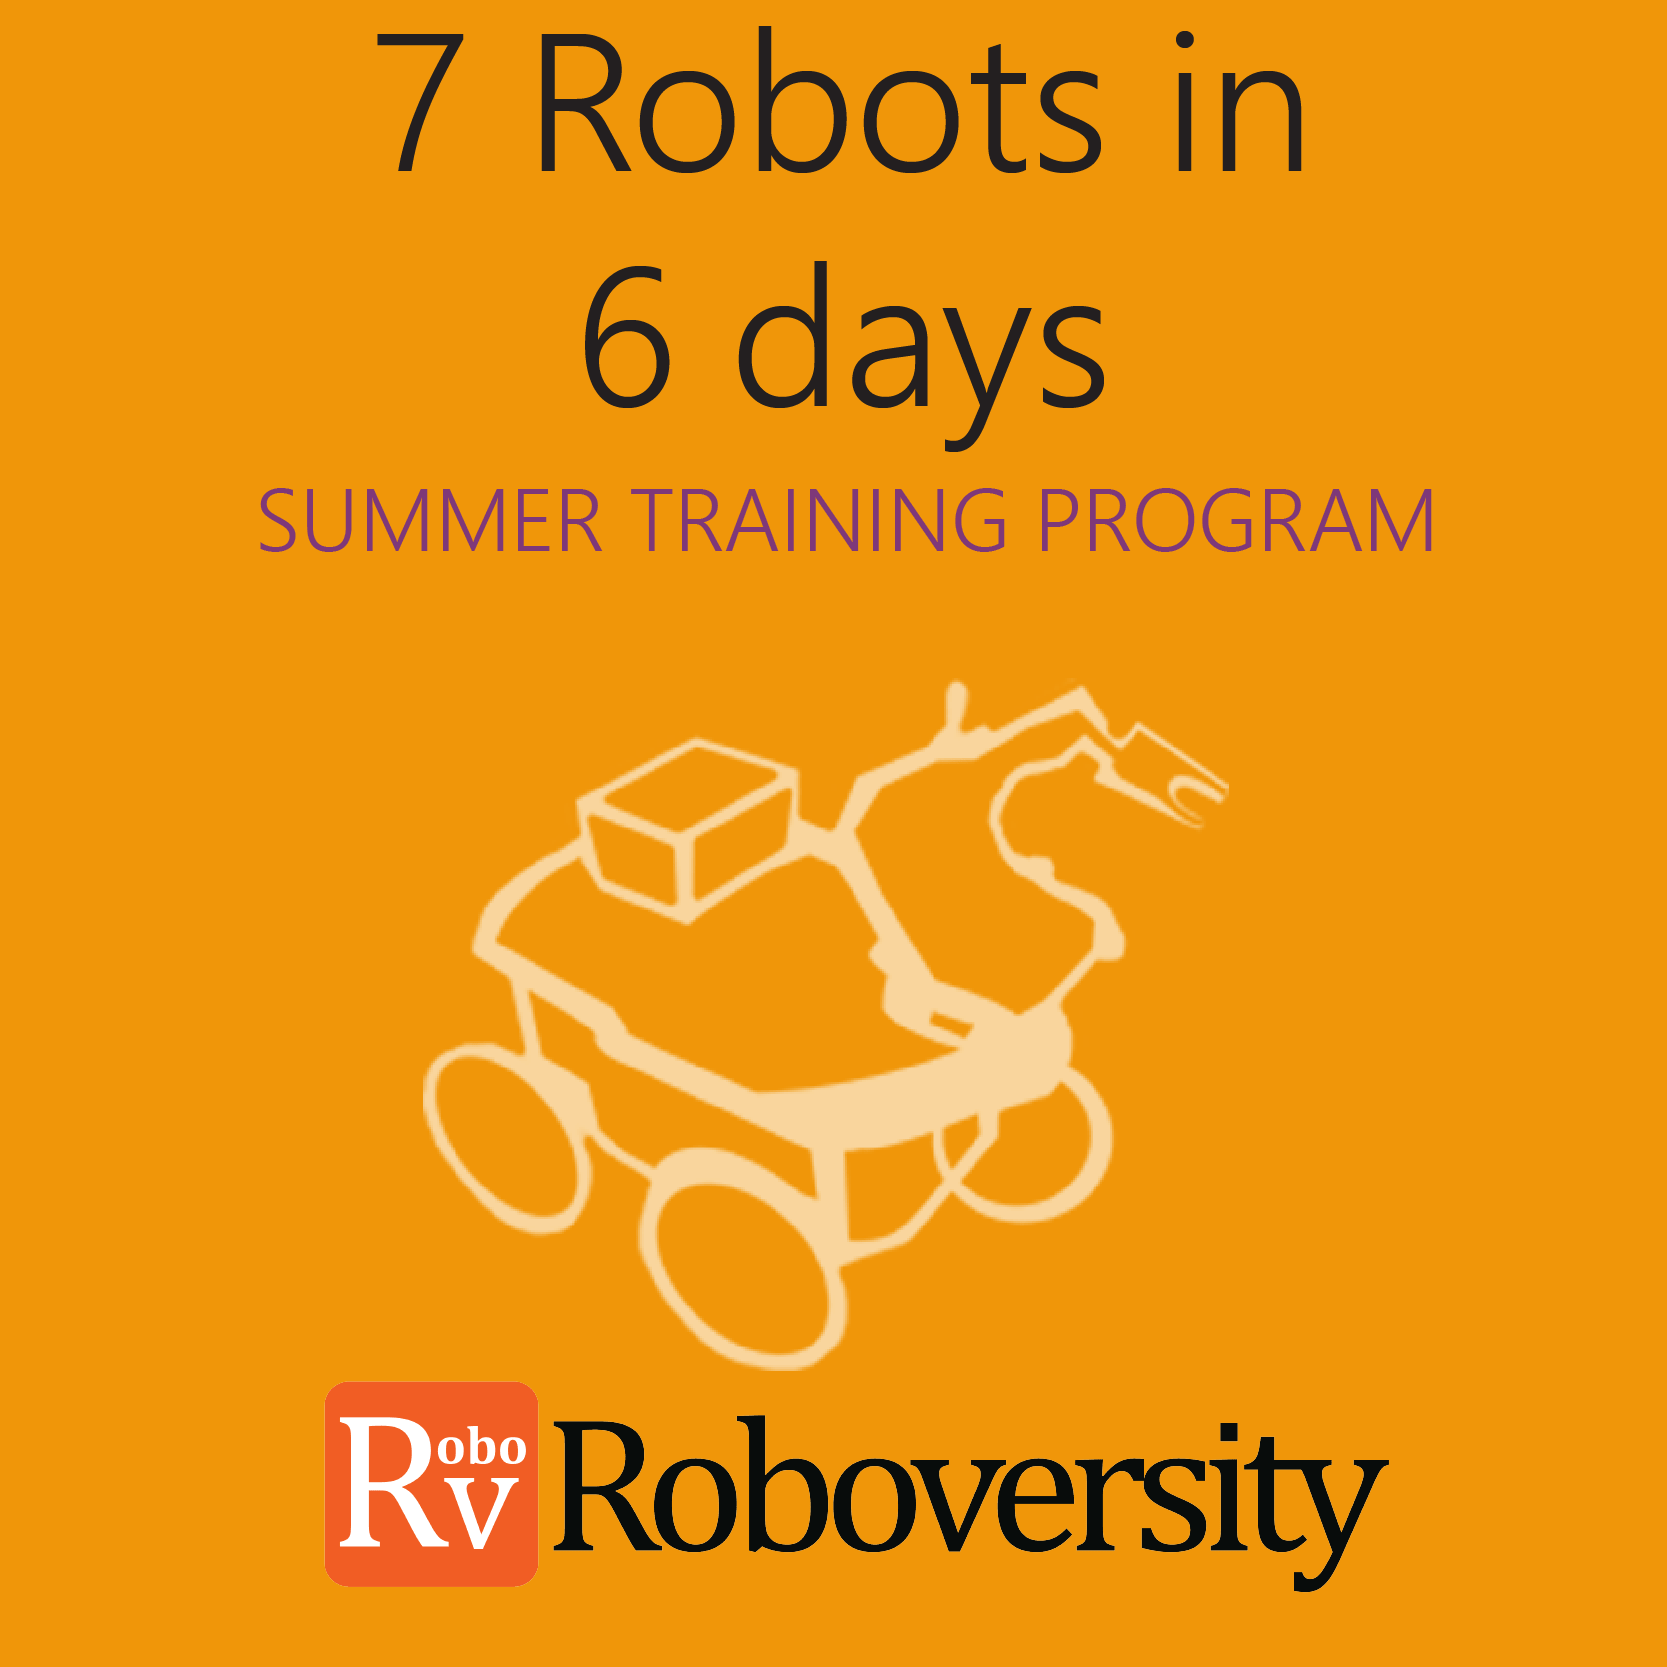 Summer Training Program in Robotics - 7 Robots in 6 Days  at Skyfi Labs Center, Gandhipuram Workshop